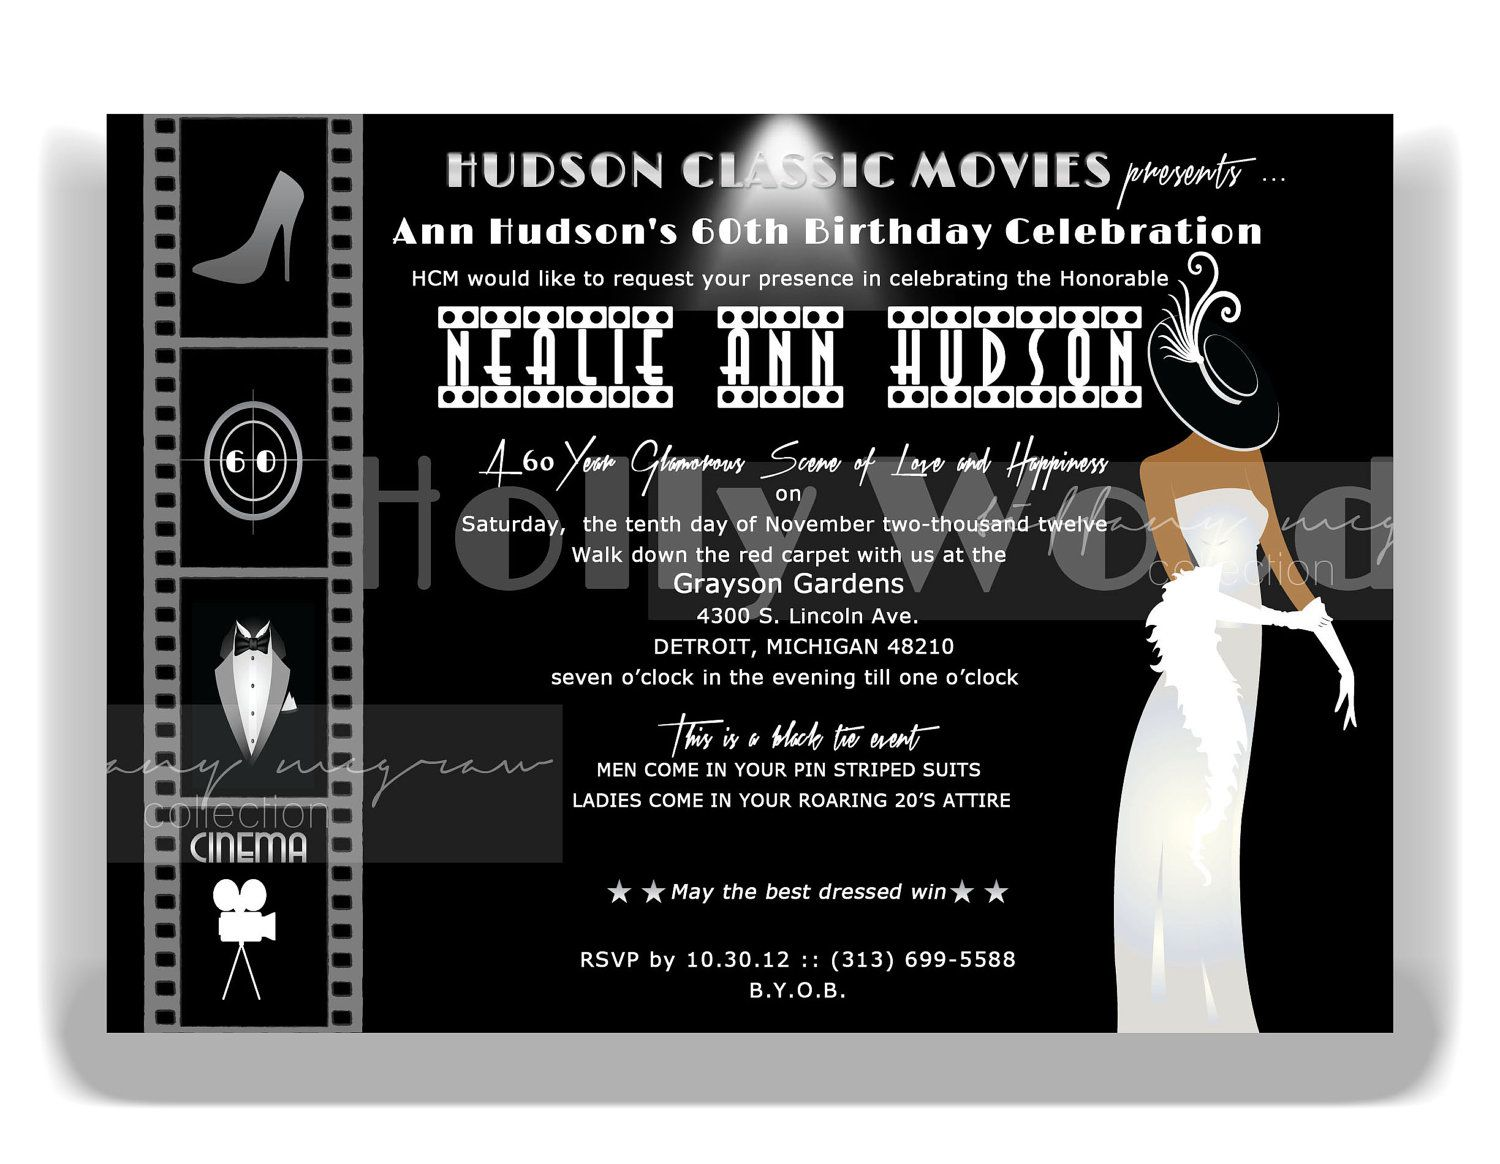 old hollywood invite - love the lady | Events & Activities ...